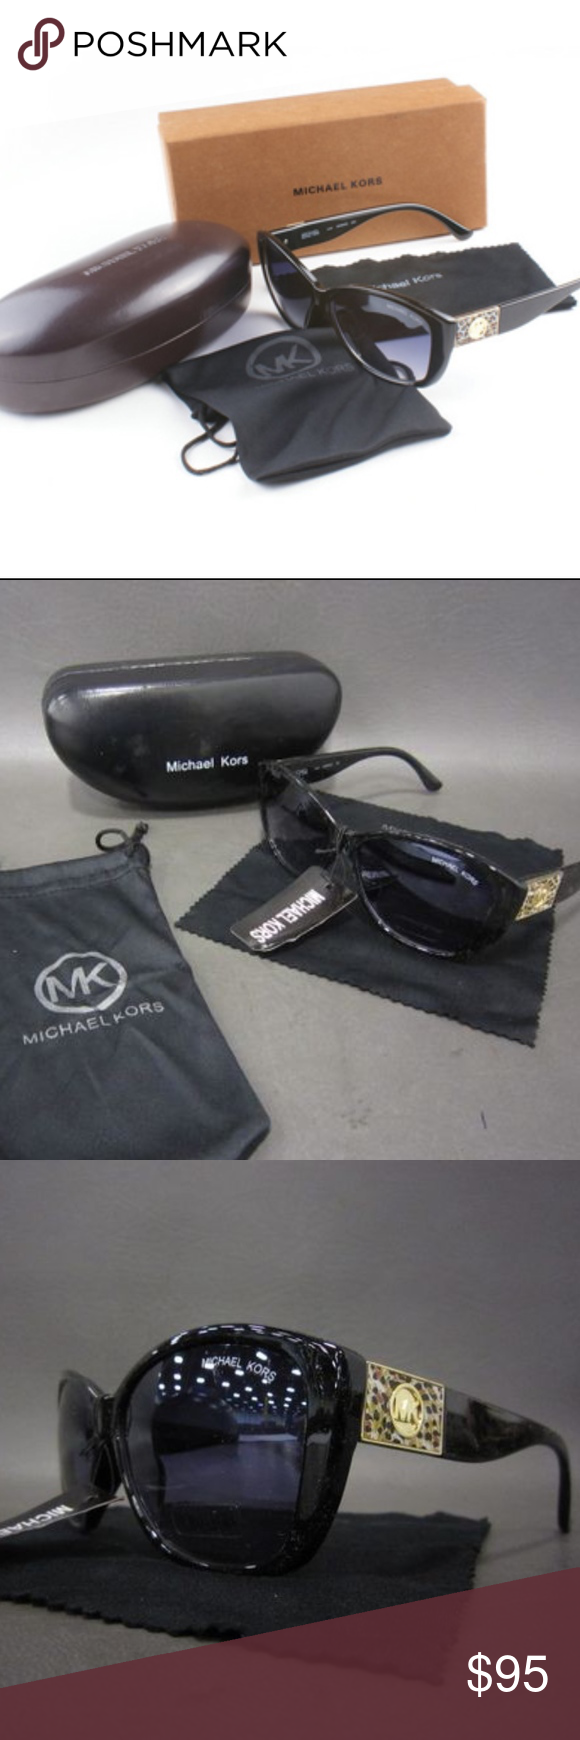 c3ab0668f354 NWT MICHEAL KORS Lucy M2894S Sunglasses Brand new with tag Michael Kors  fabulous Lucy oversized sunglasses